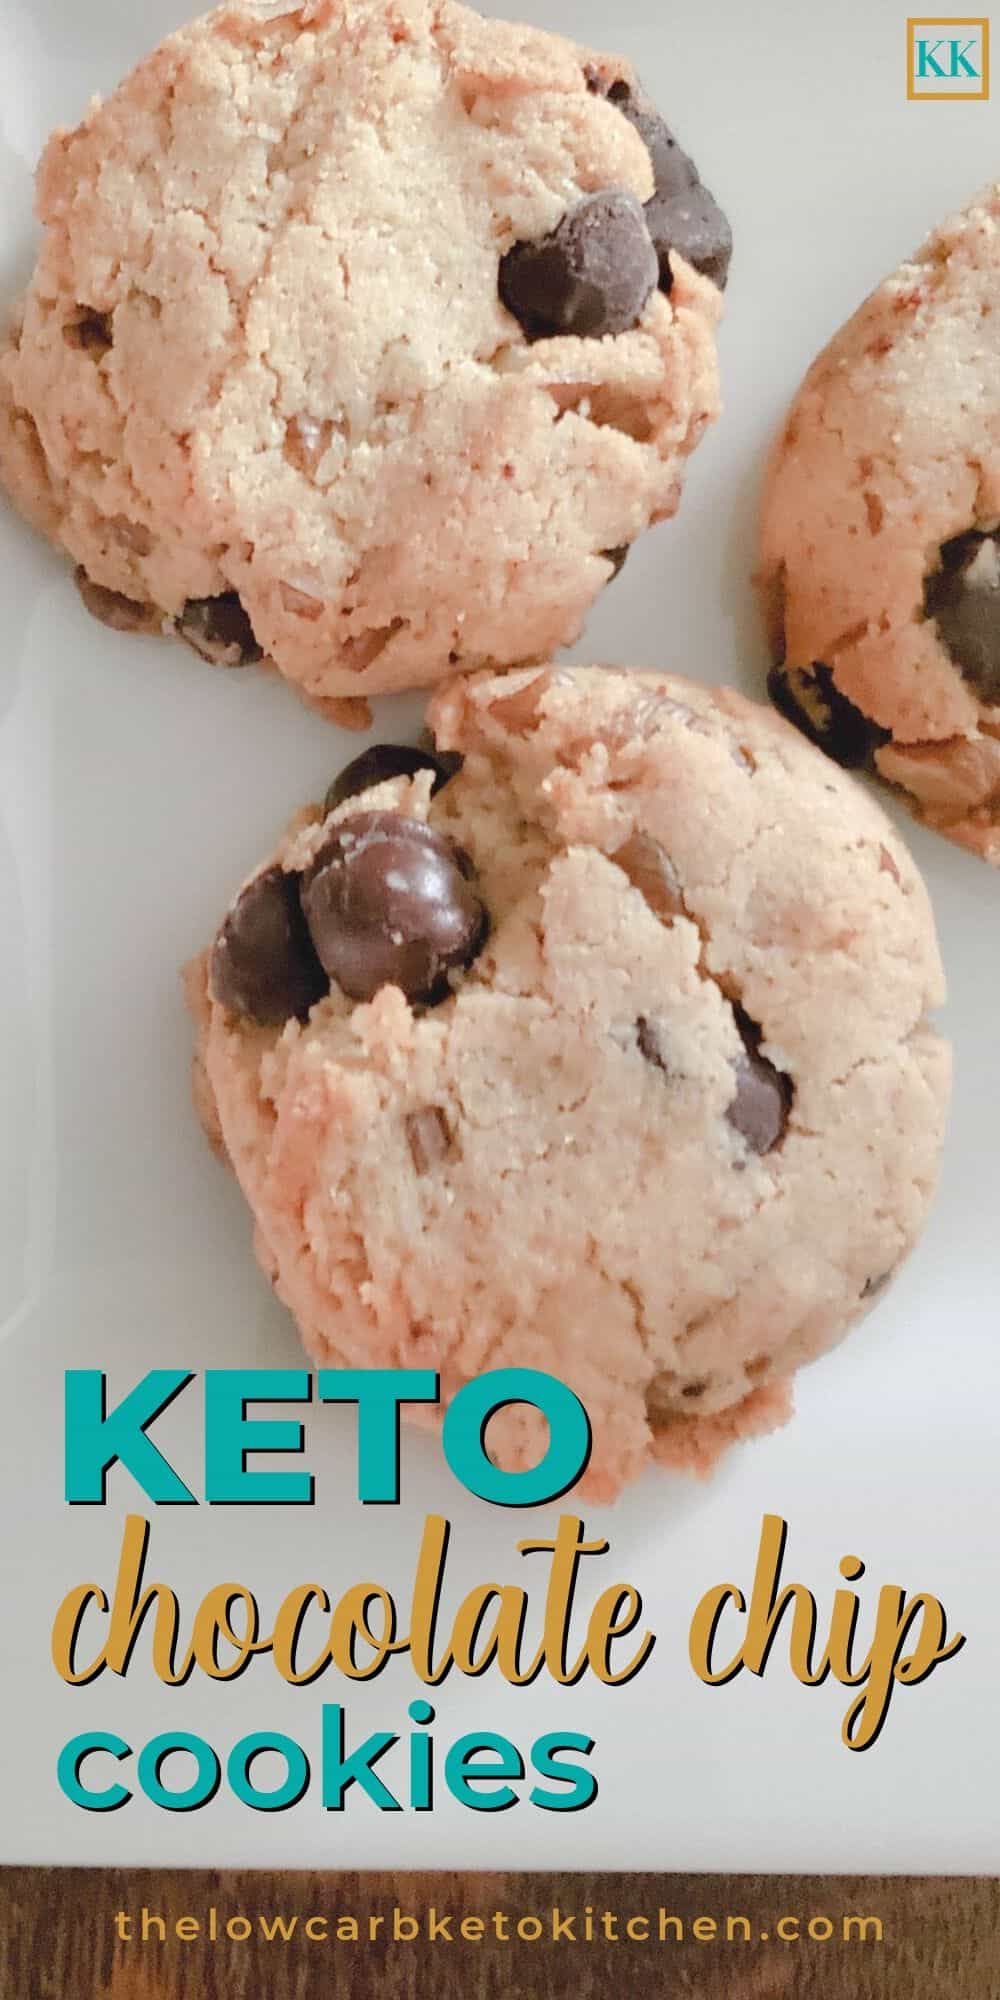 Keto chocolate chip cookies on white plate